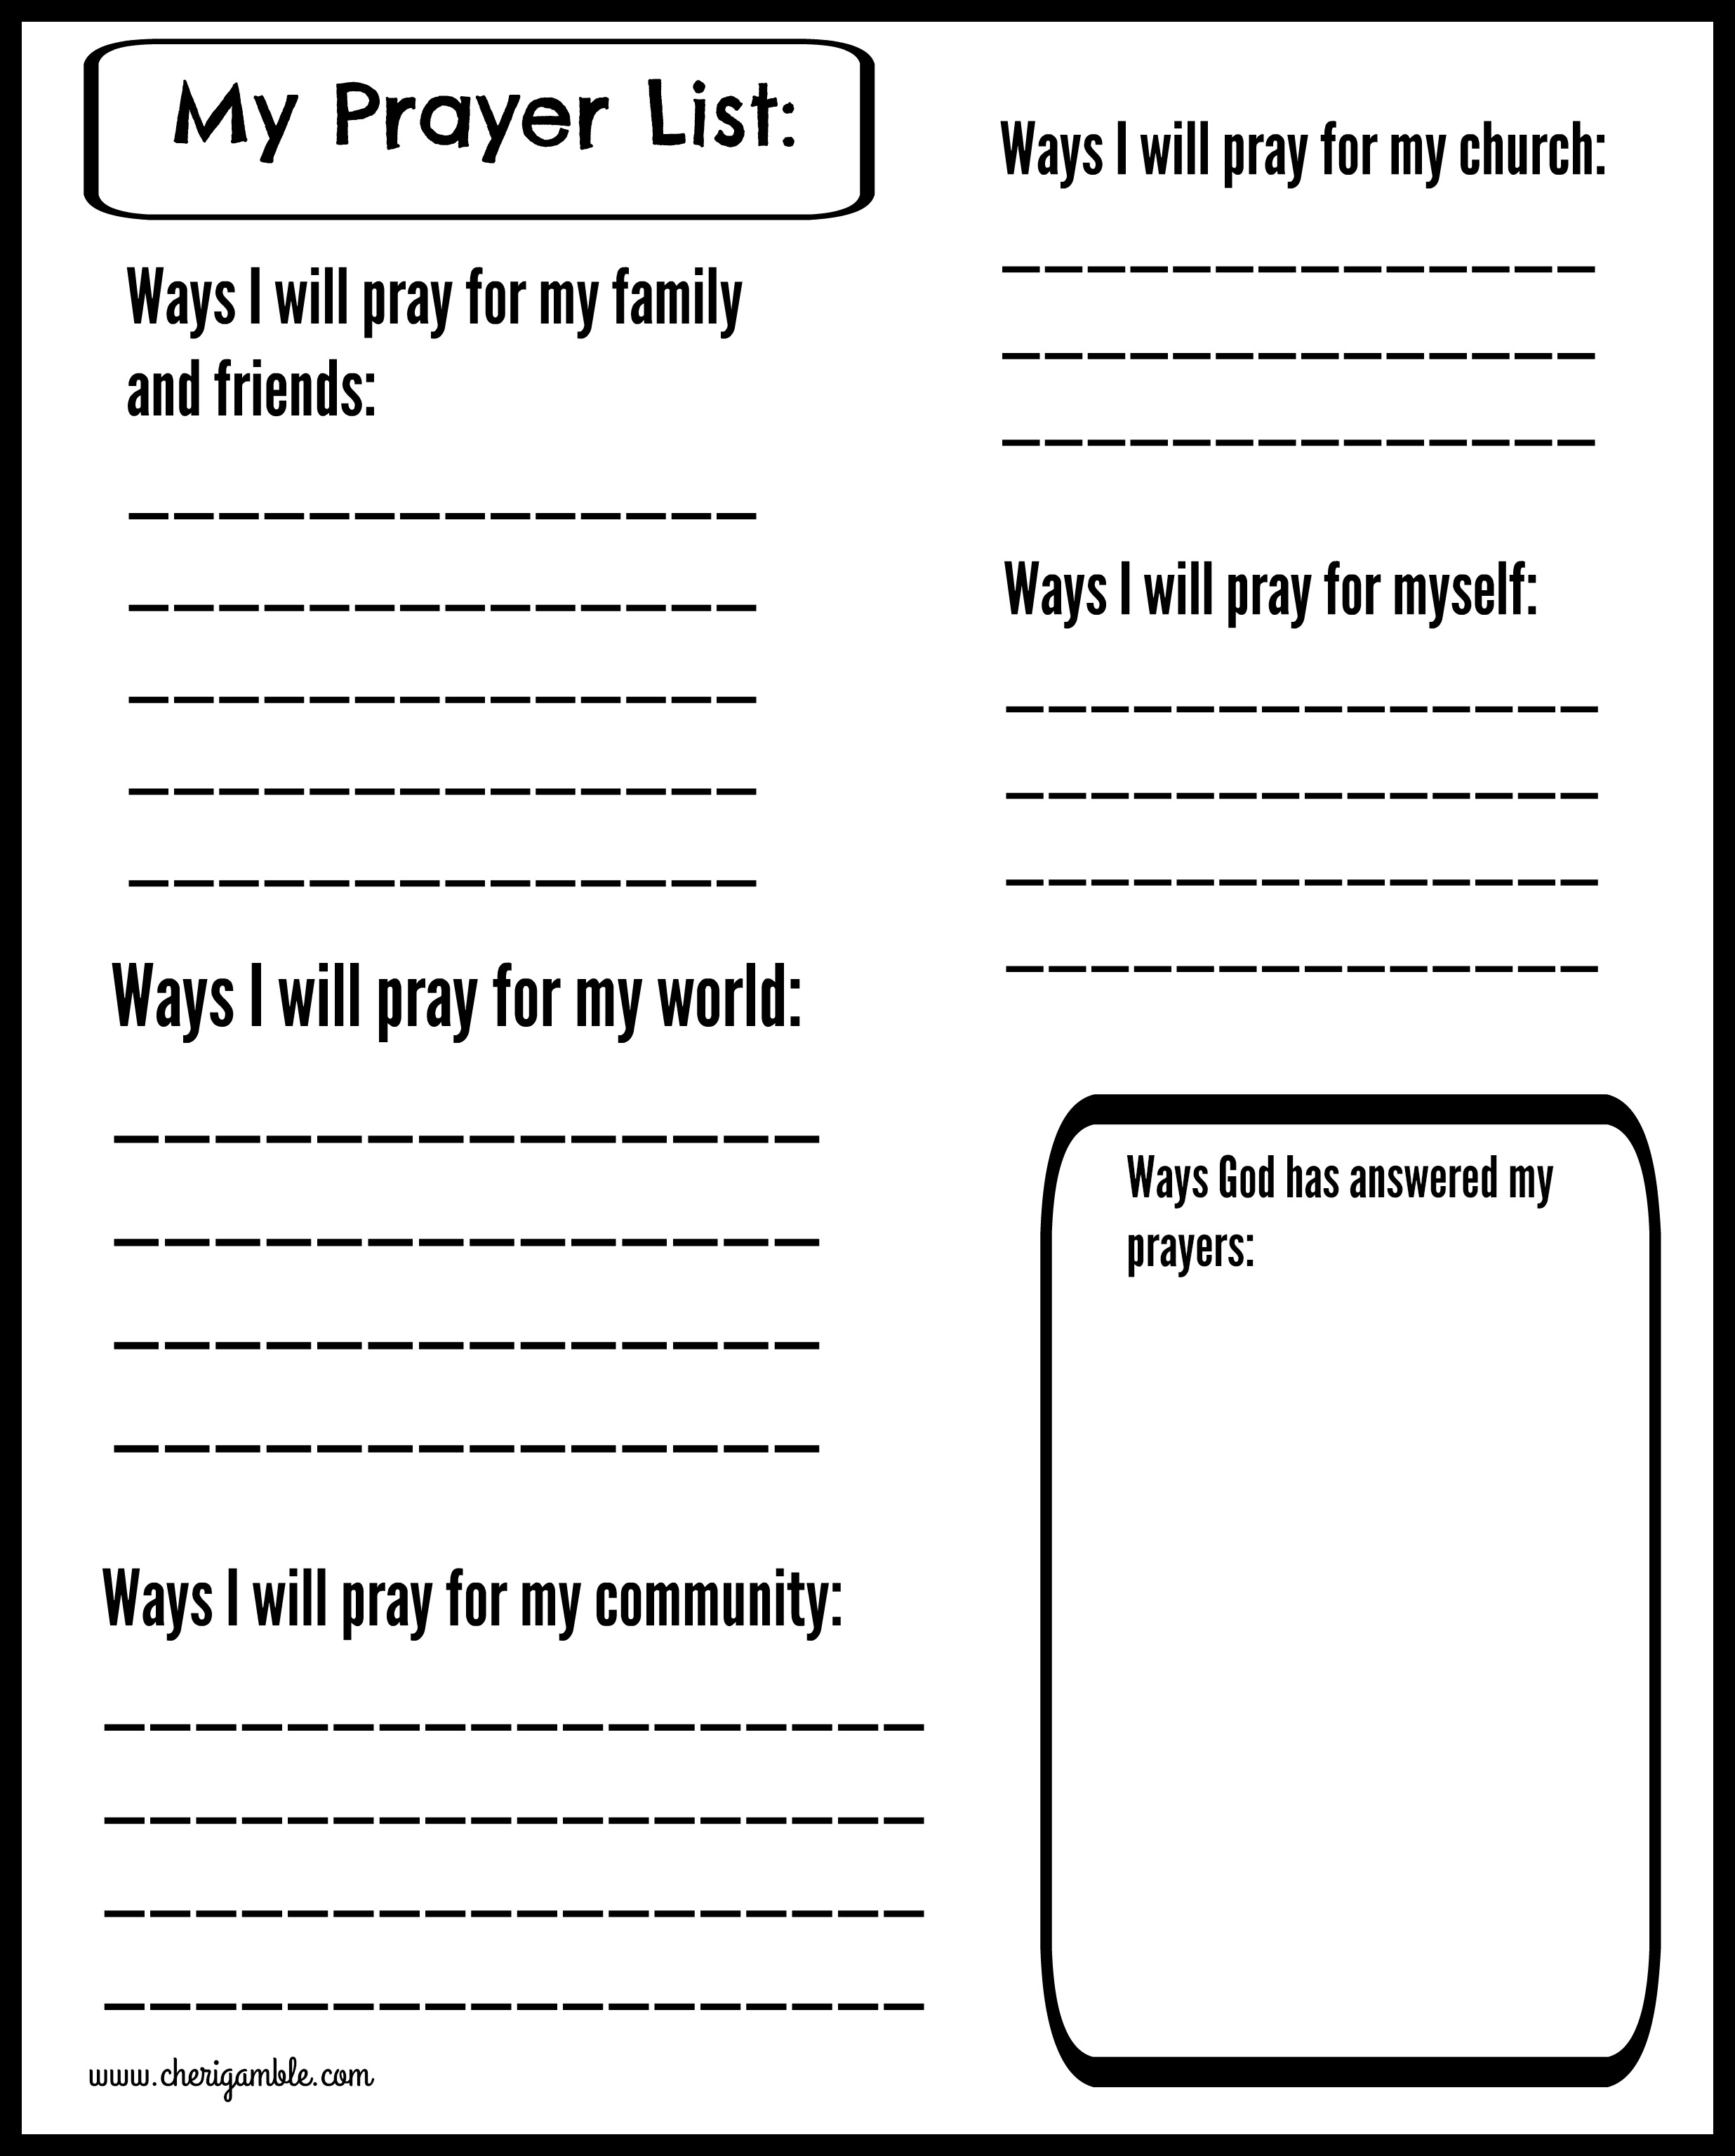 photograph relating to Printable Prayers identified as Printable Prayer Publications for Little ones Cheri Gamble